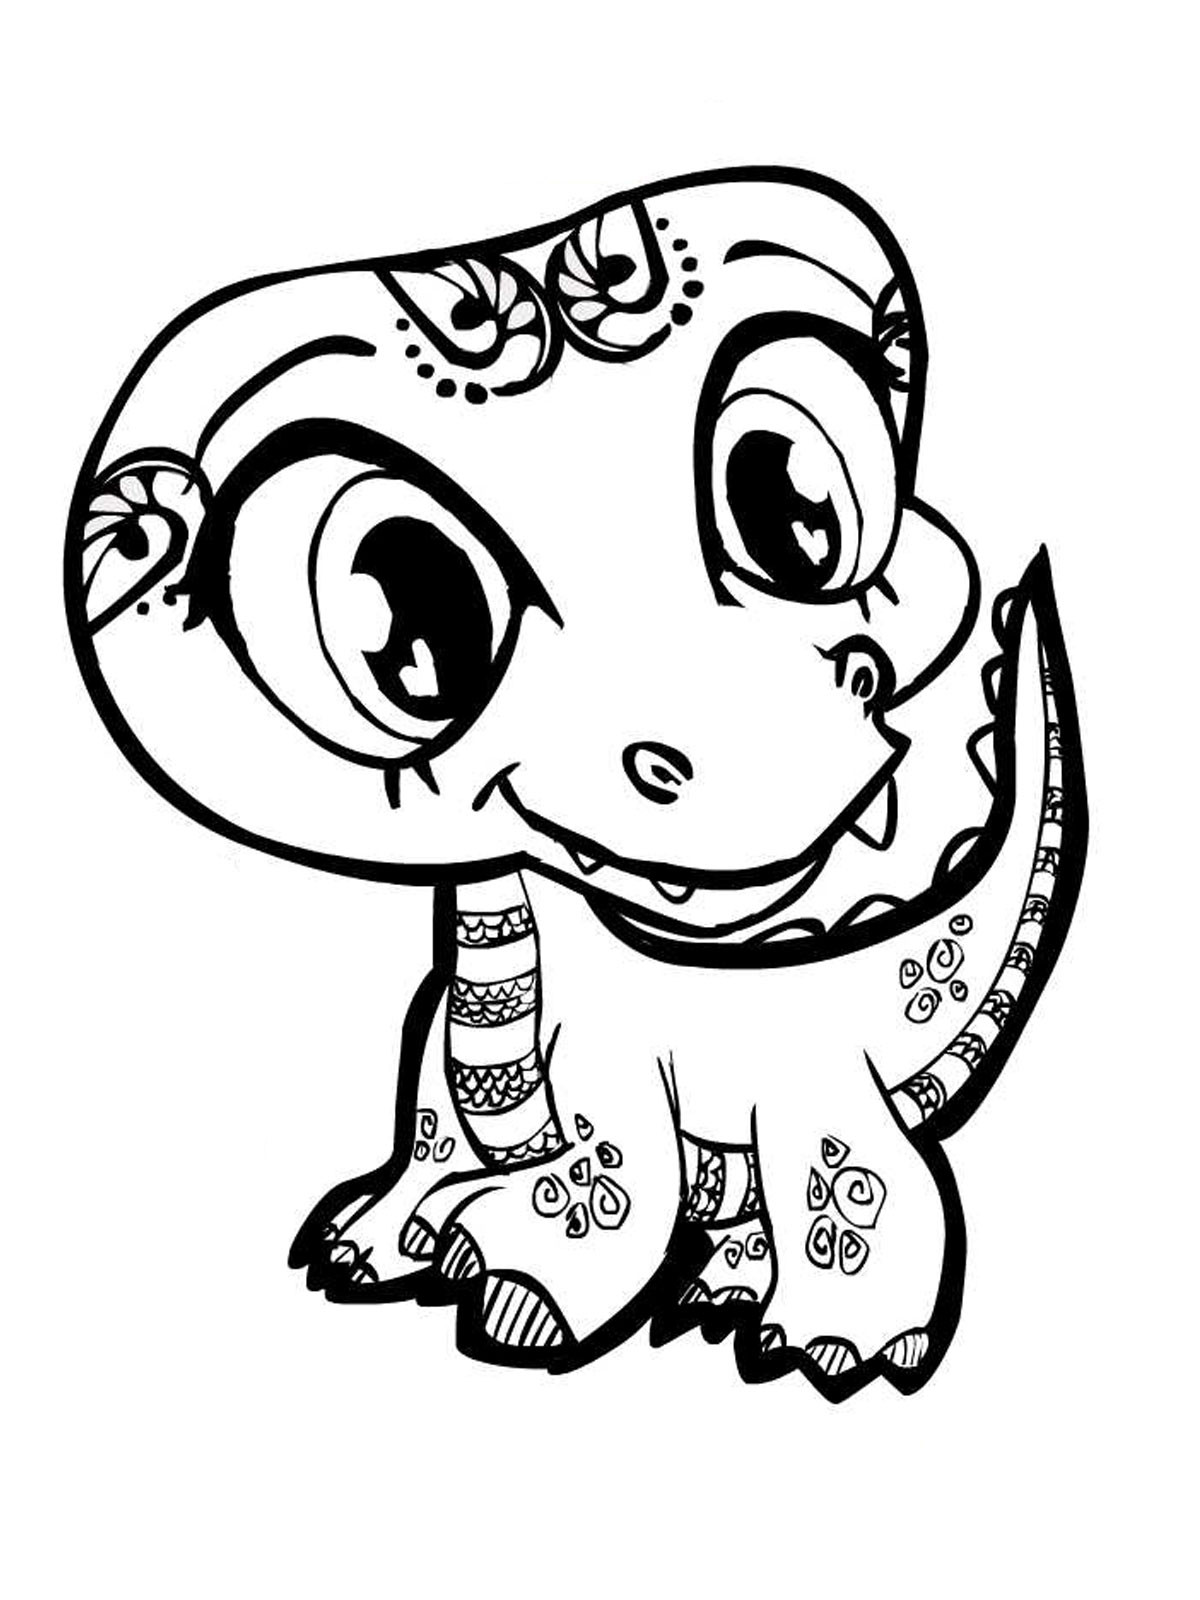 Coloring Pages Of Cute Animals  Cute Animal Coloring Pages Printables Cute Animal Coloring